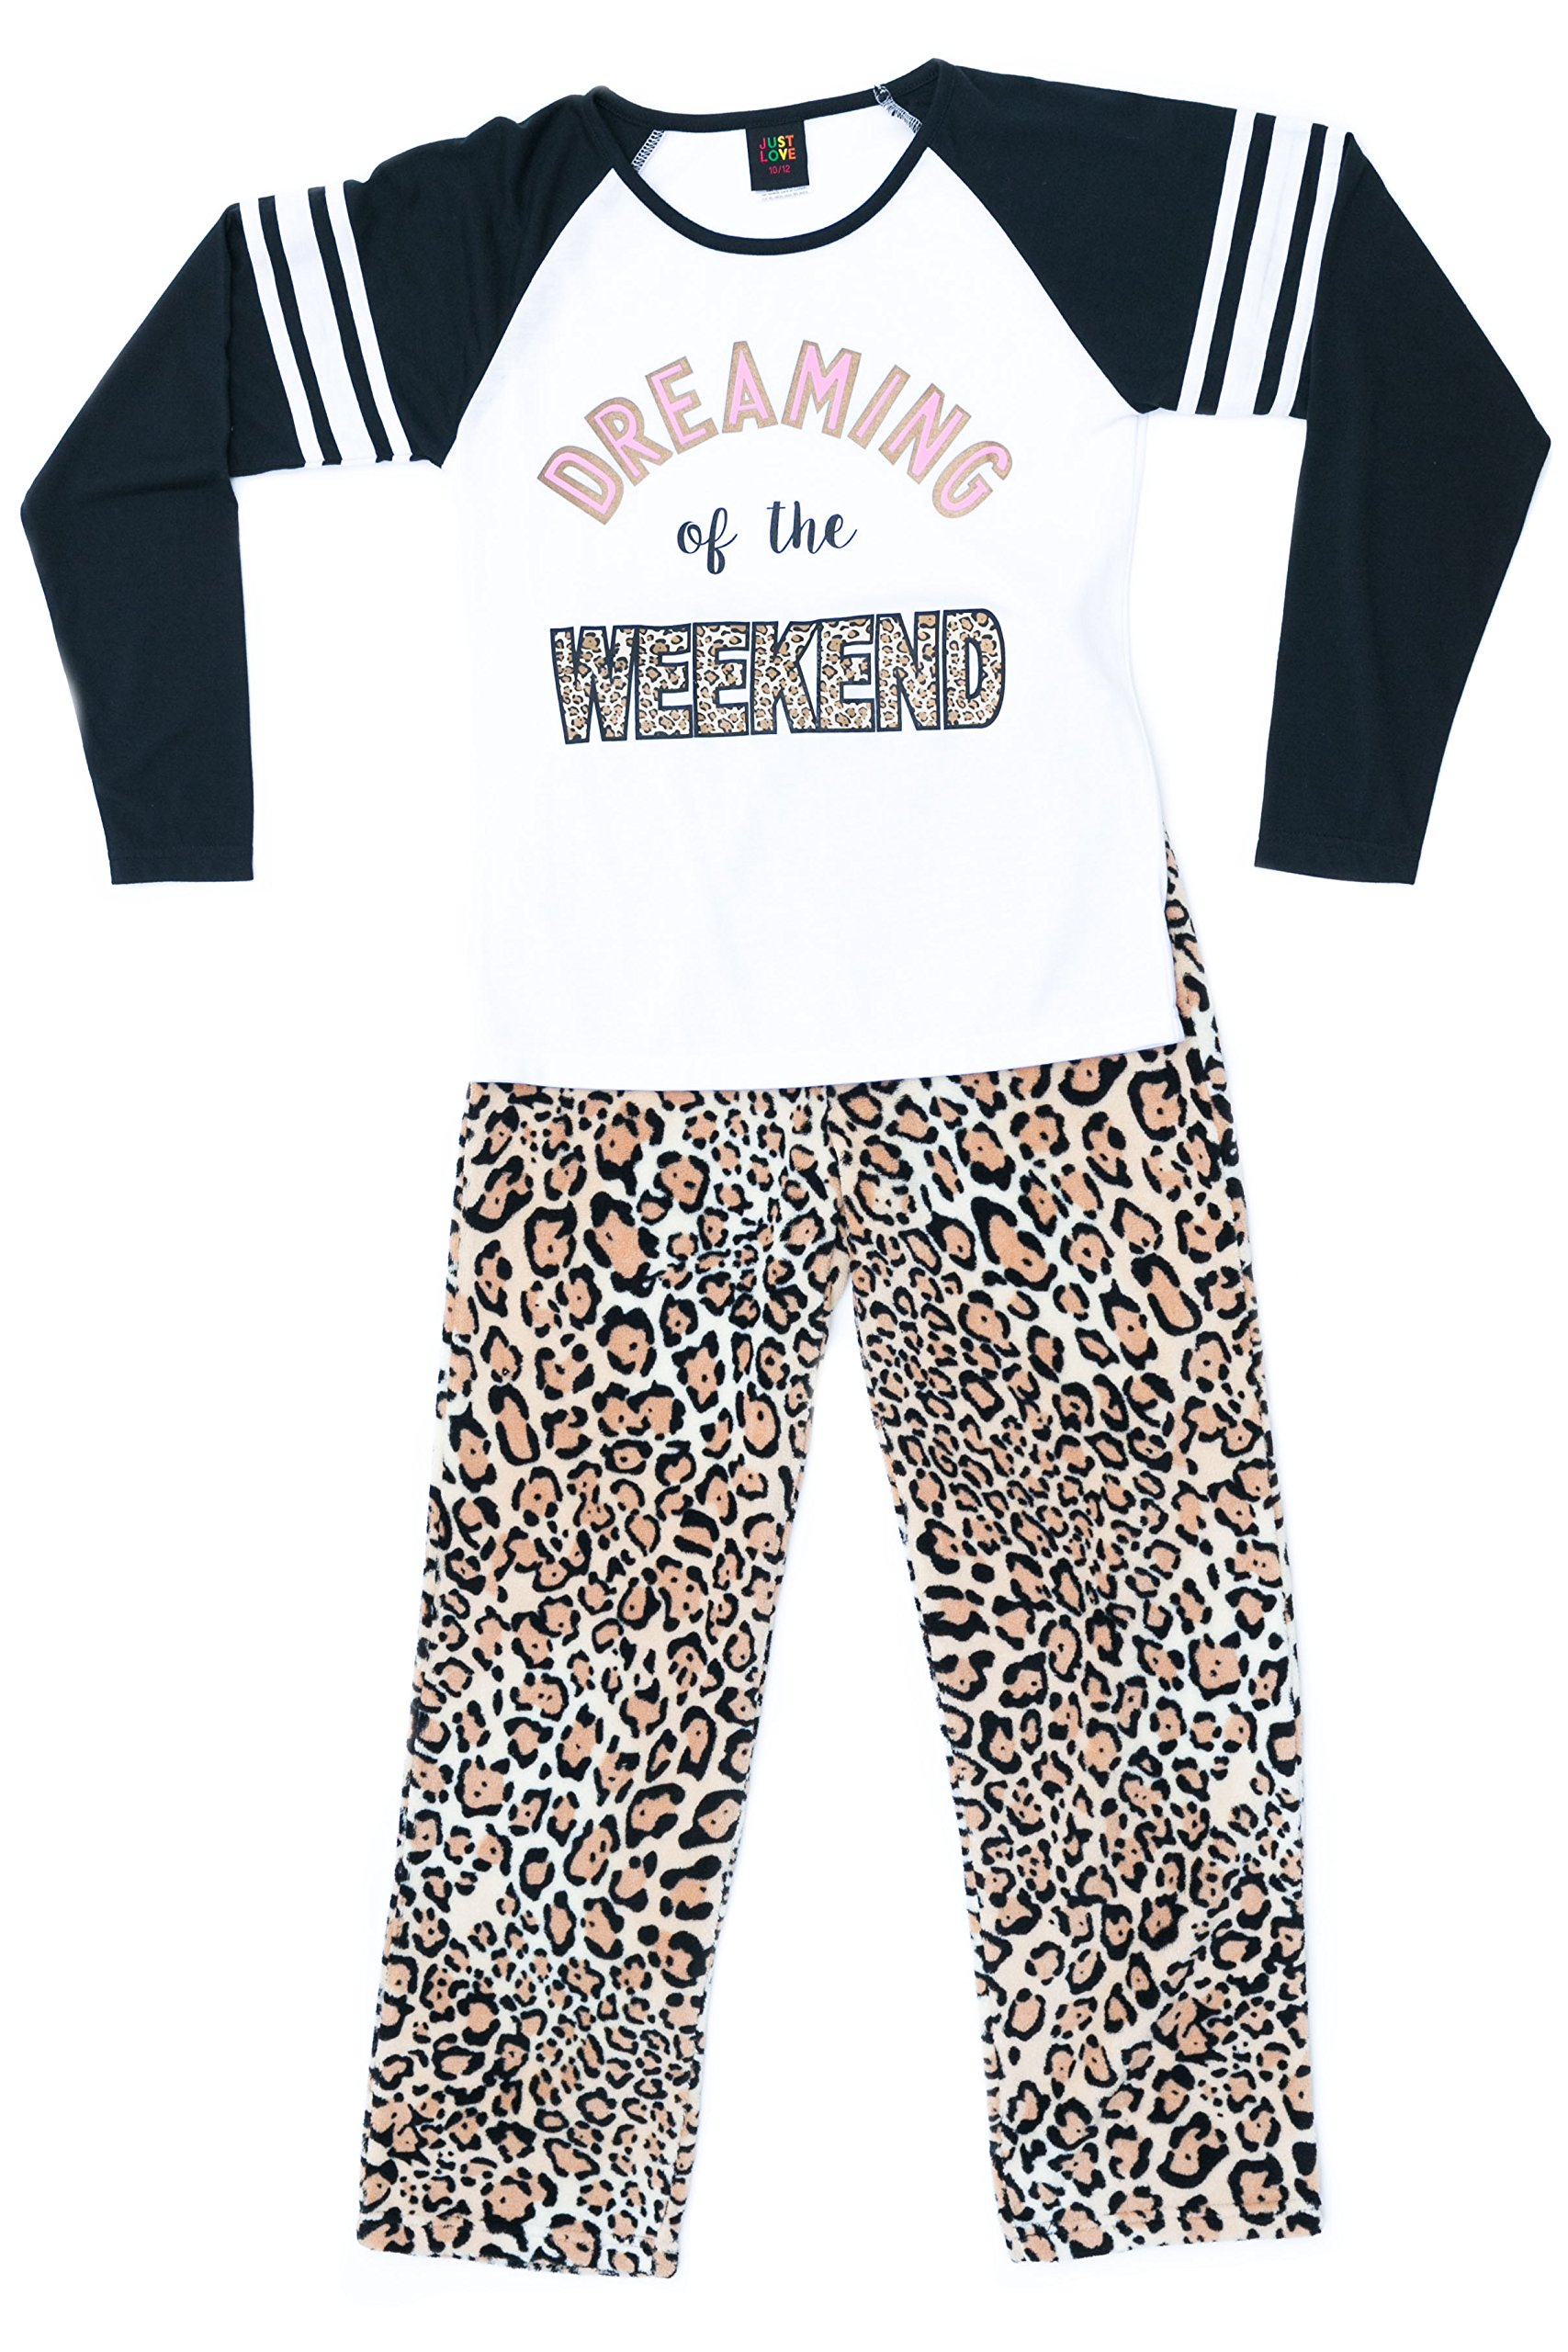 44642-10114-7/8 Just Love Two Piece Girls Pajamas Set, 7-8, Weekend Leopard